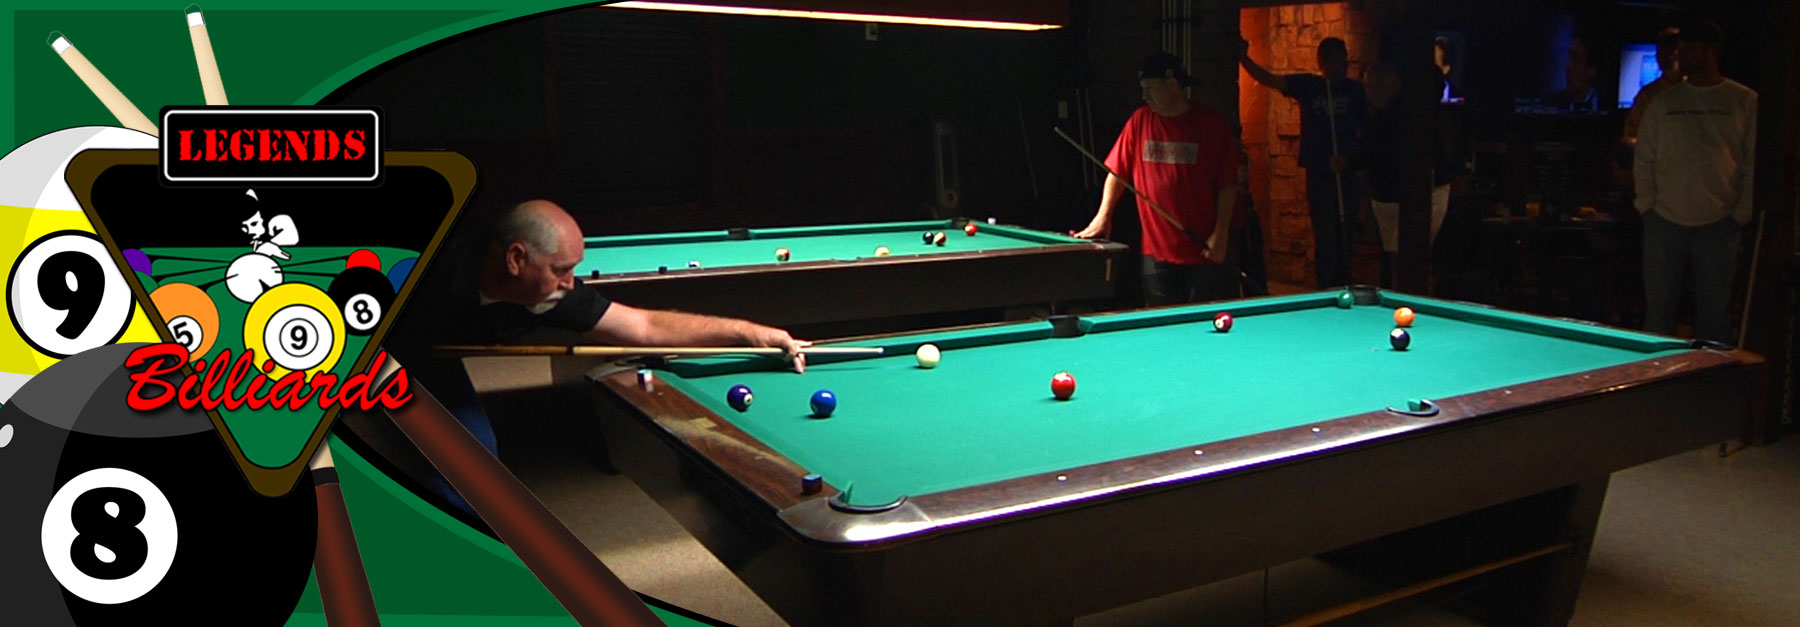 860 Simonis felt covered tables for the pro pool players and leagues